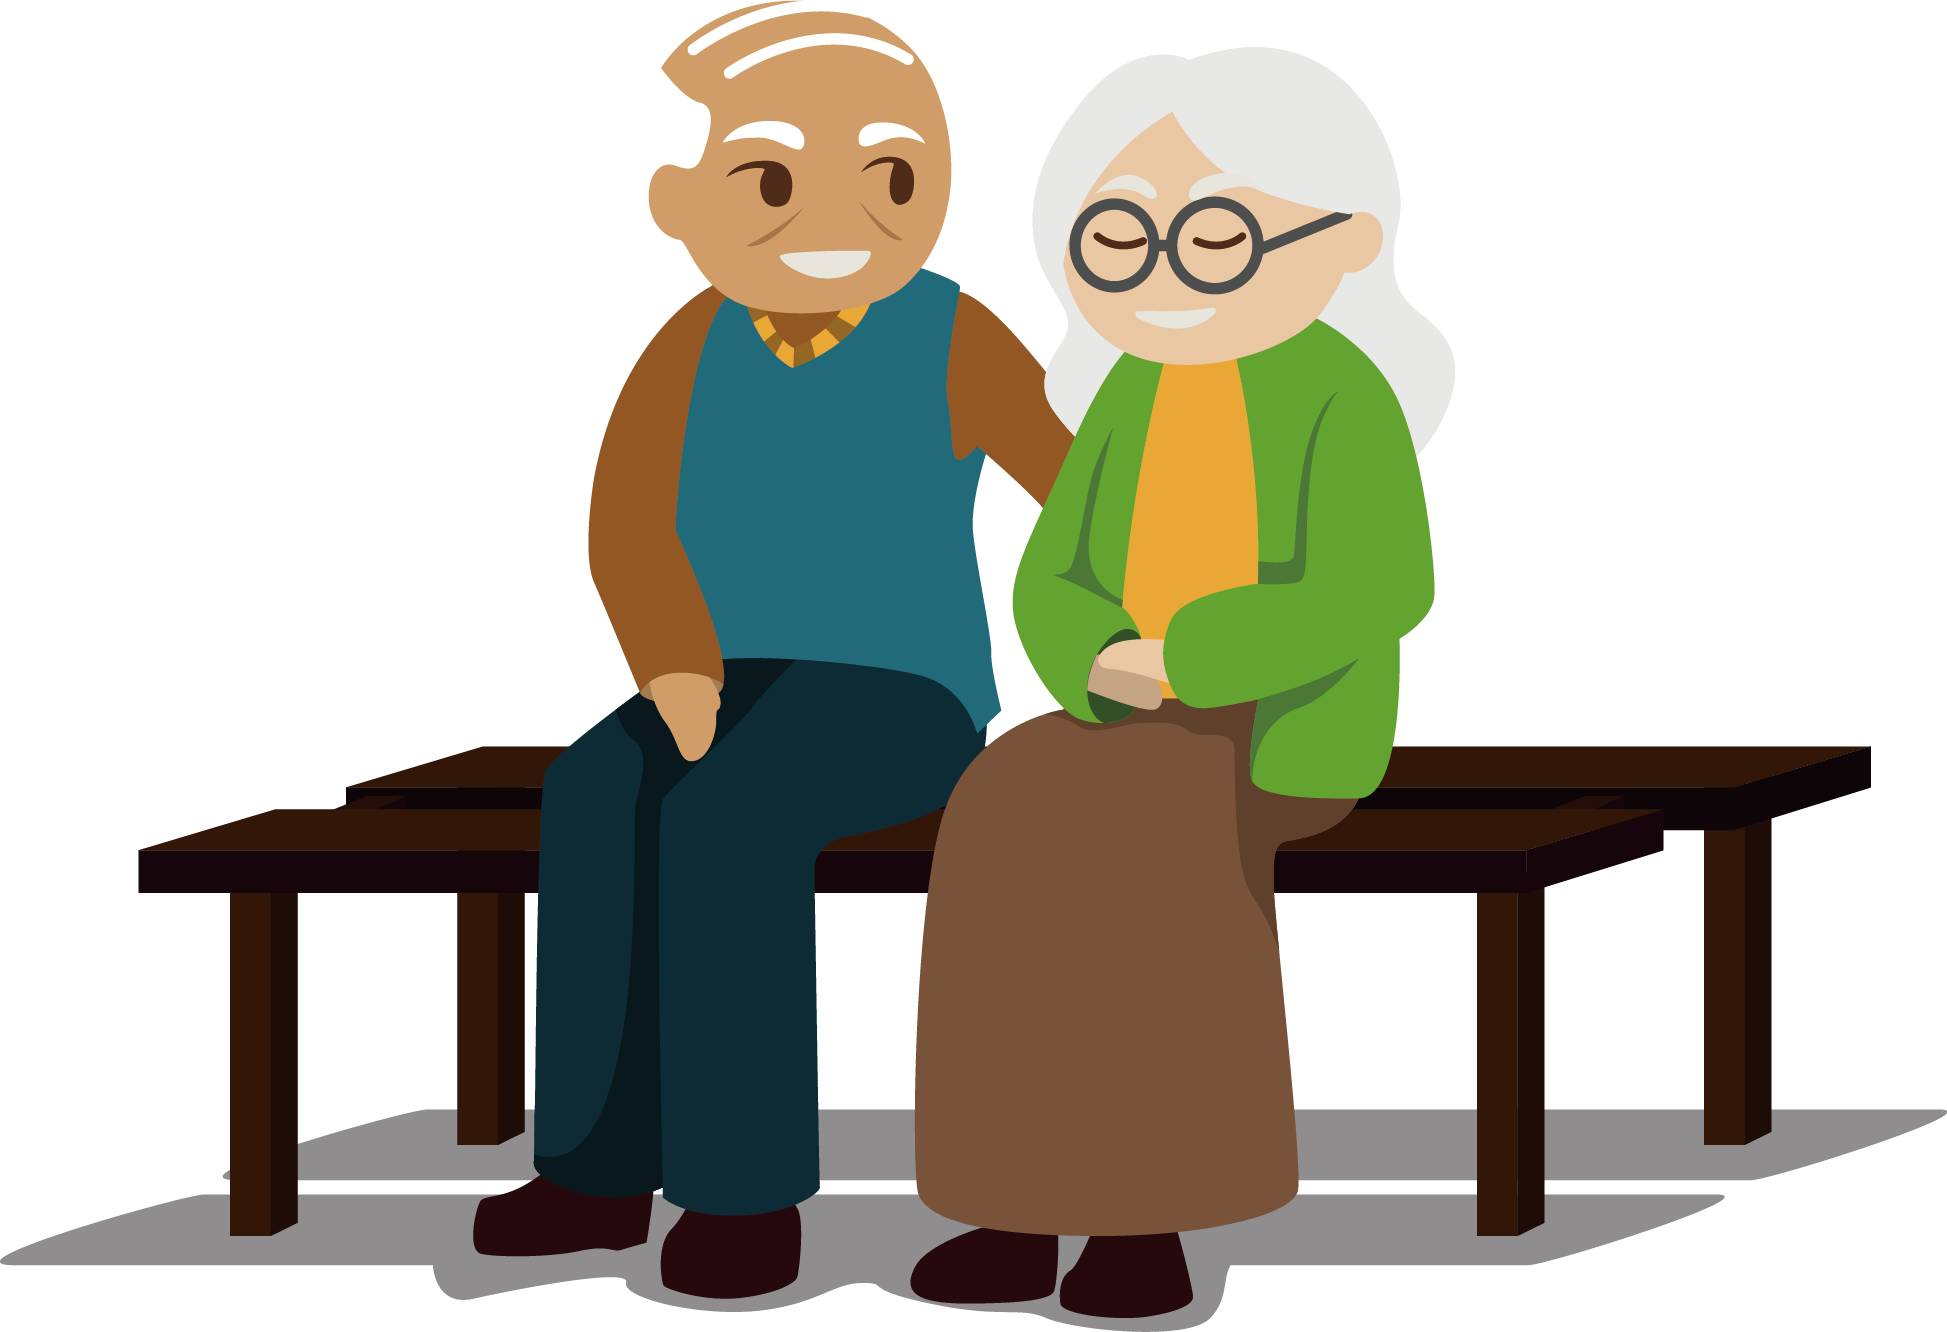 Grandparent clipart retired couple. Investment pension retirement saving